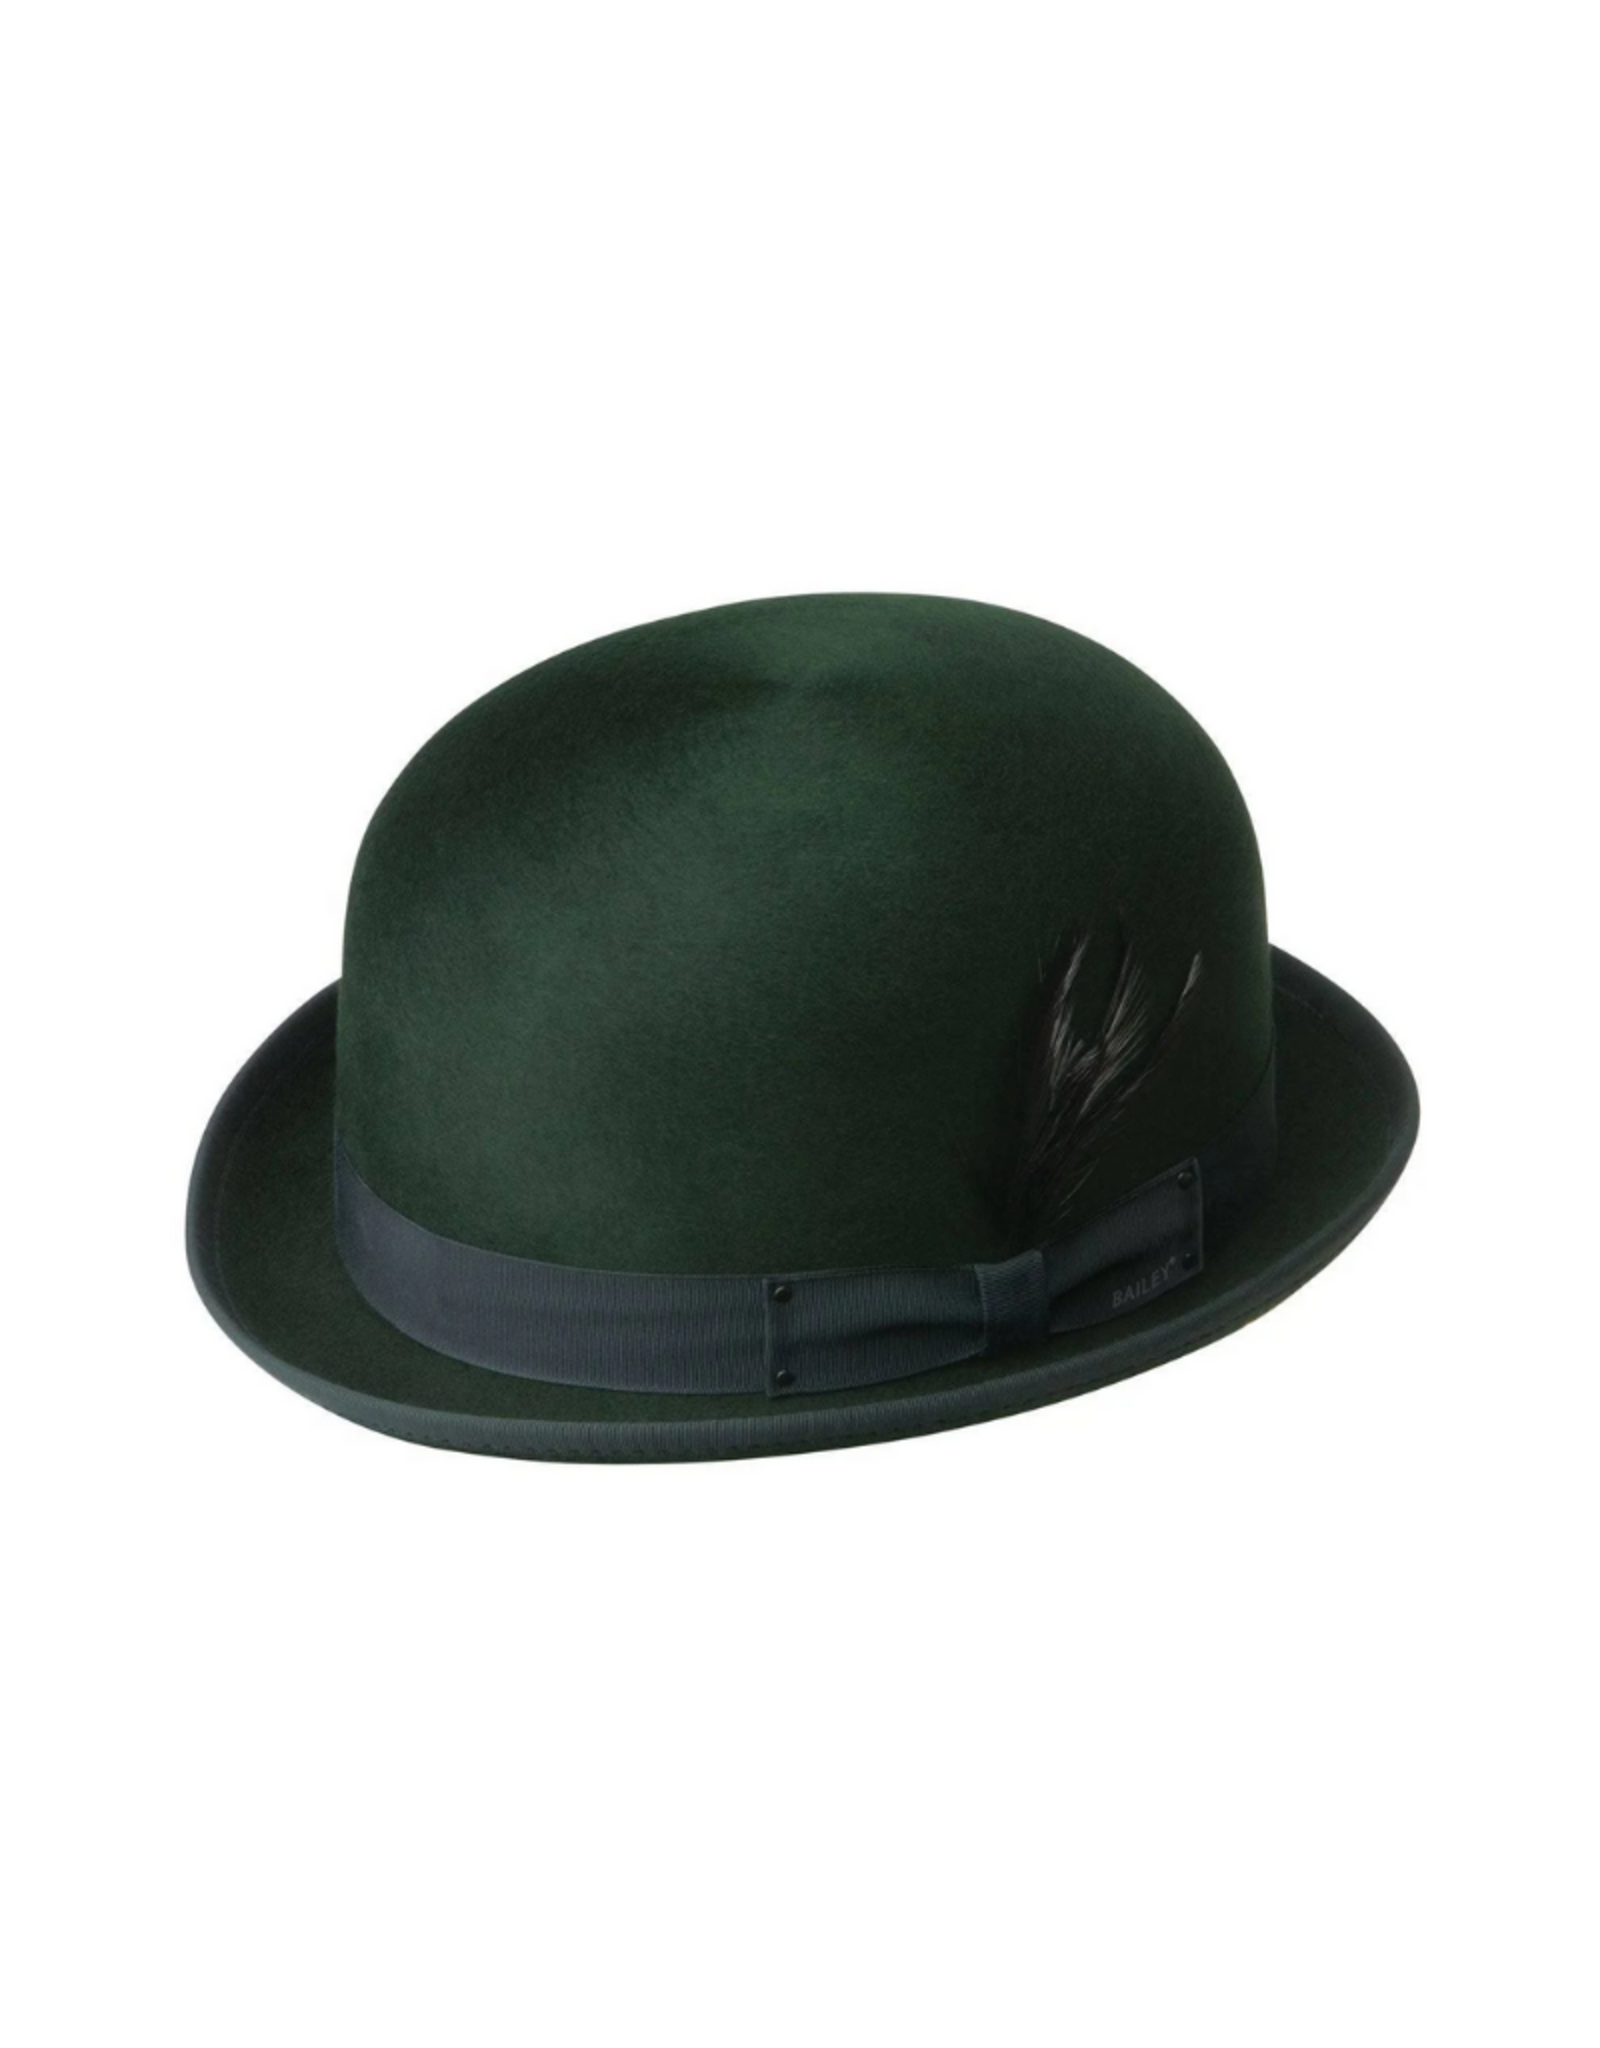 Bailey Hat Co. HAT-DERBY-HARKER